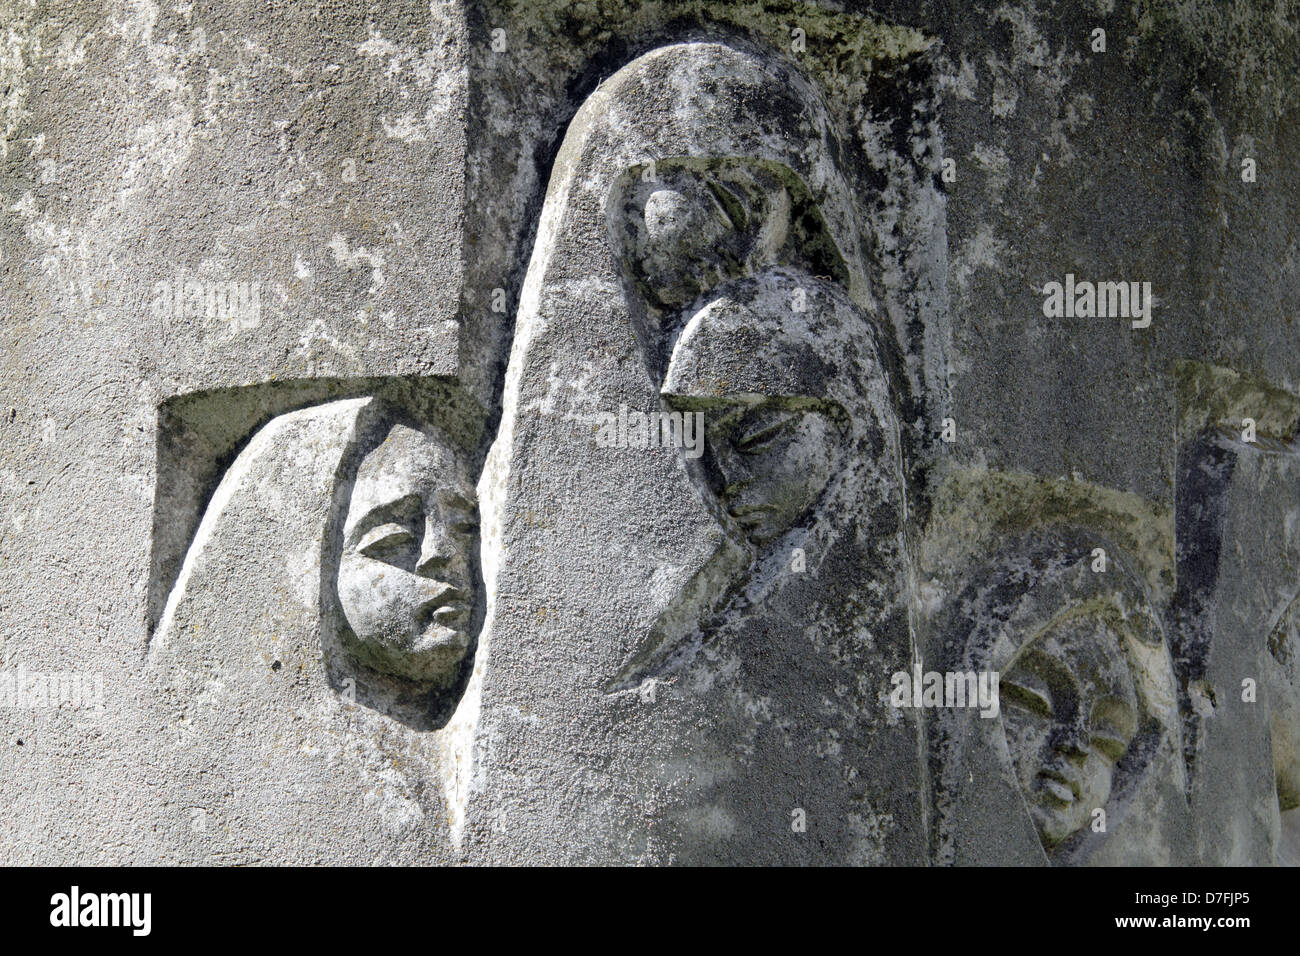 Orphans' faces engraved on a section of Janusz Korczak Sculpture In Front Of The Krochmalna Street Orphanage - Stock Image